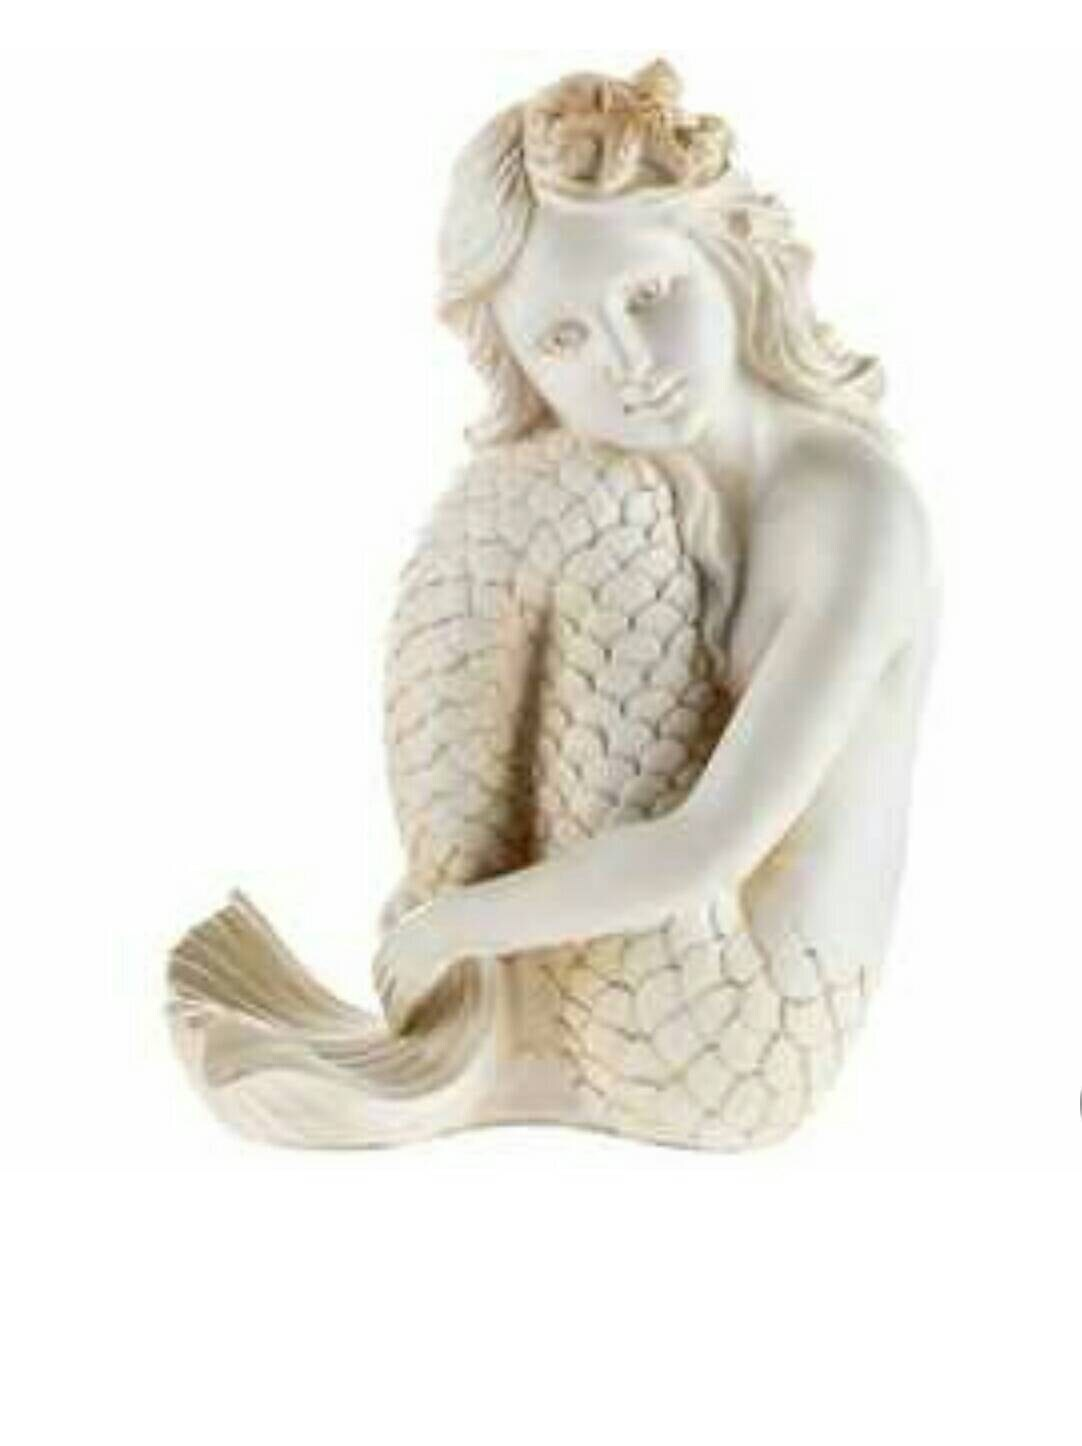 On sale large mermaid decor statue resin home decor antique for Home decor items on sale